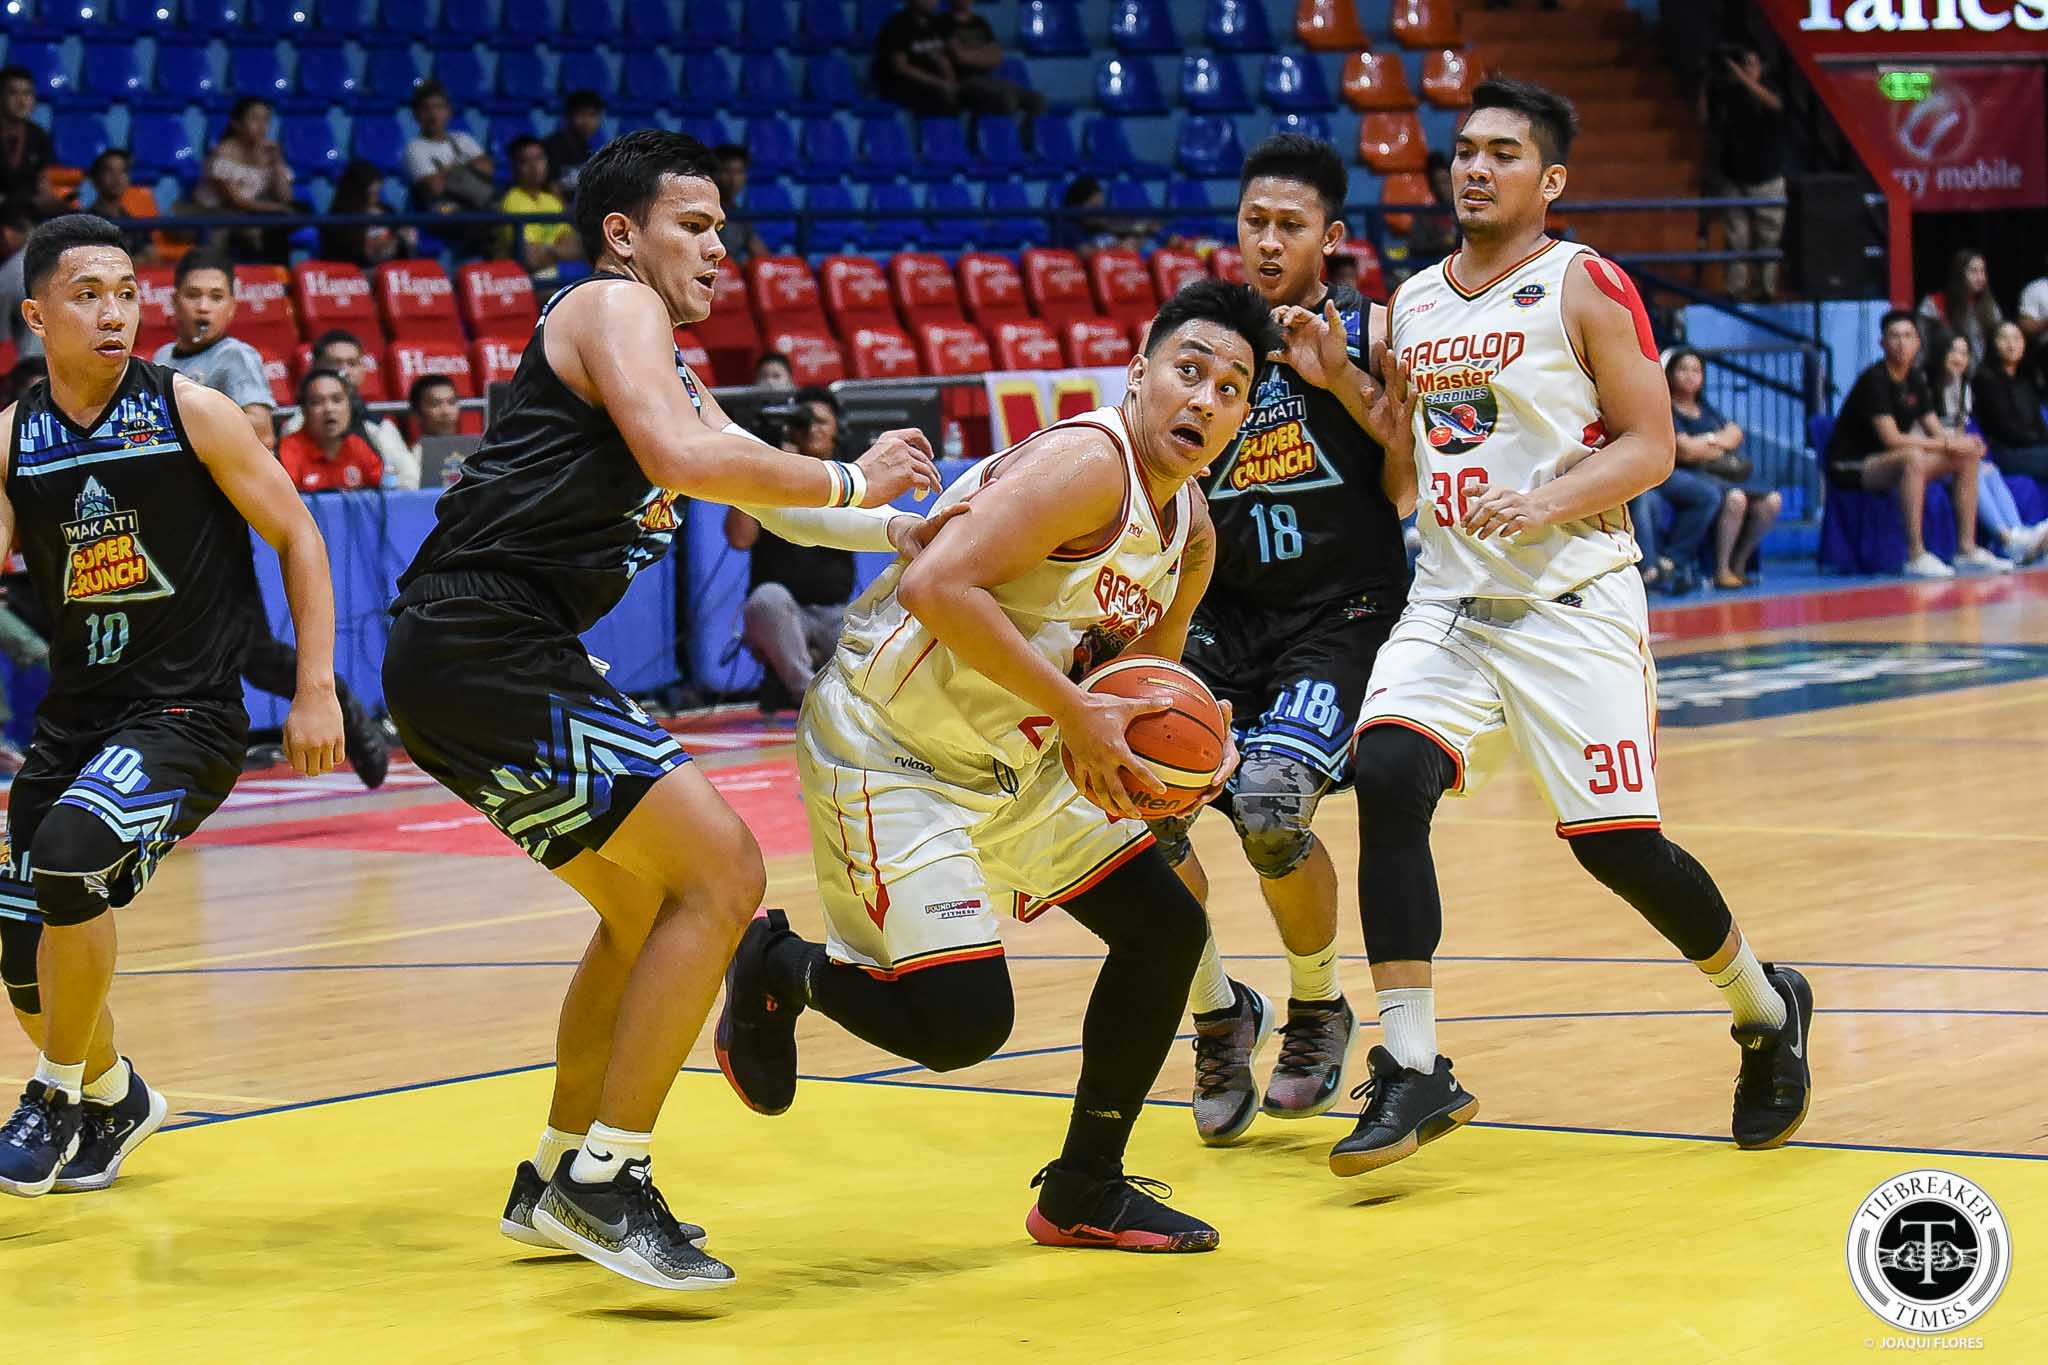 Tiebreaker Times Mac Tallo eyes redemption, signs with Bacolod Basketball MPBL News  Mac Tallo Bacolod Masters